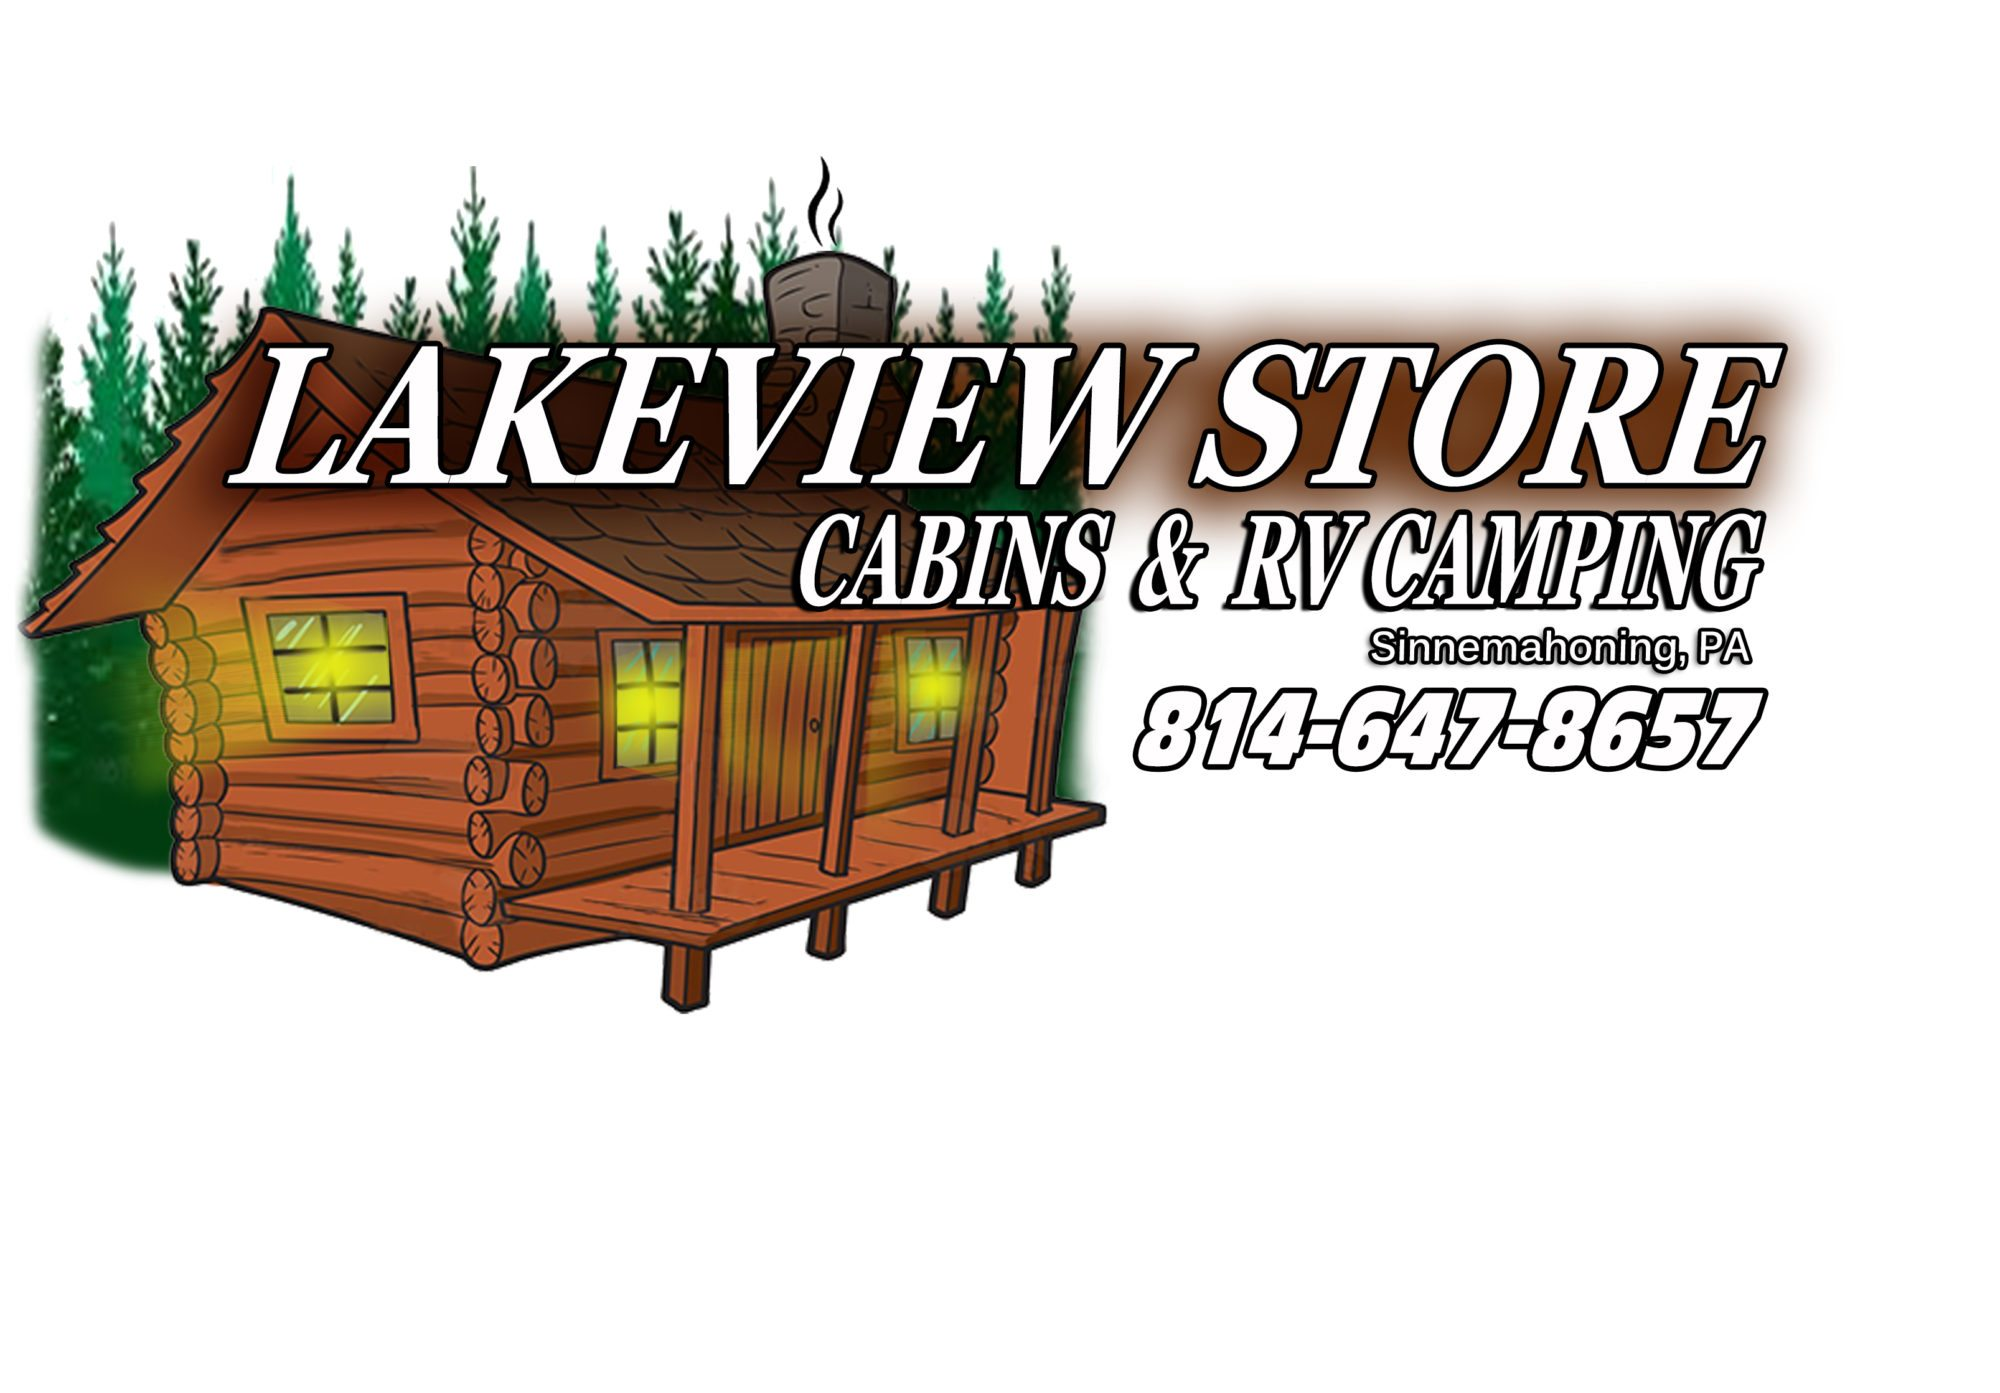 Lakeview Store & Camping | Visit PA Great Outdoors